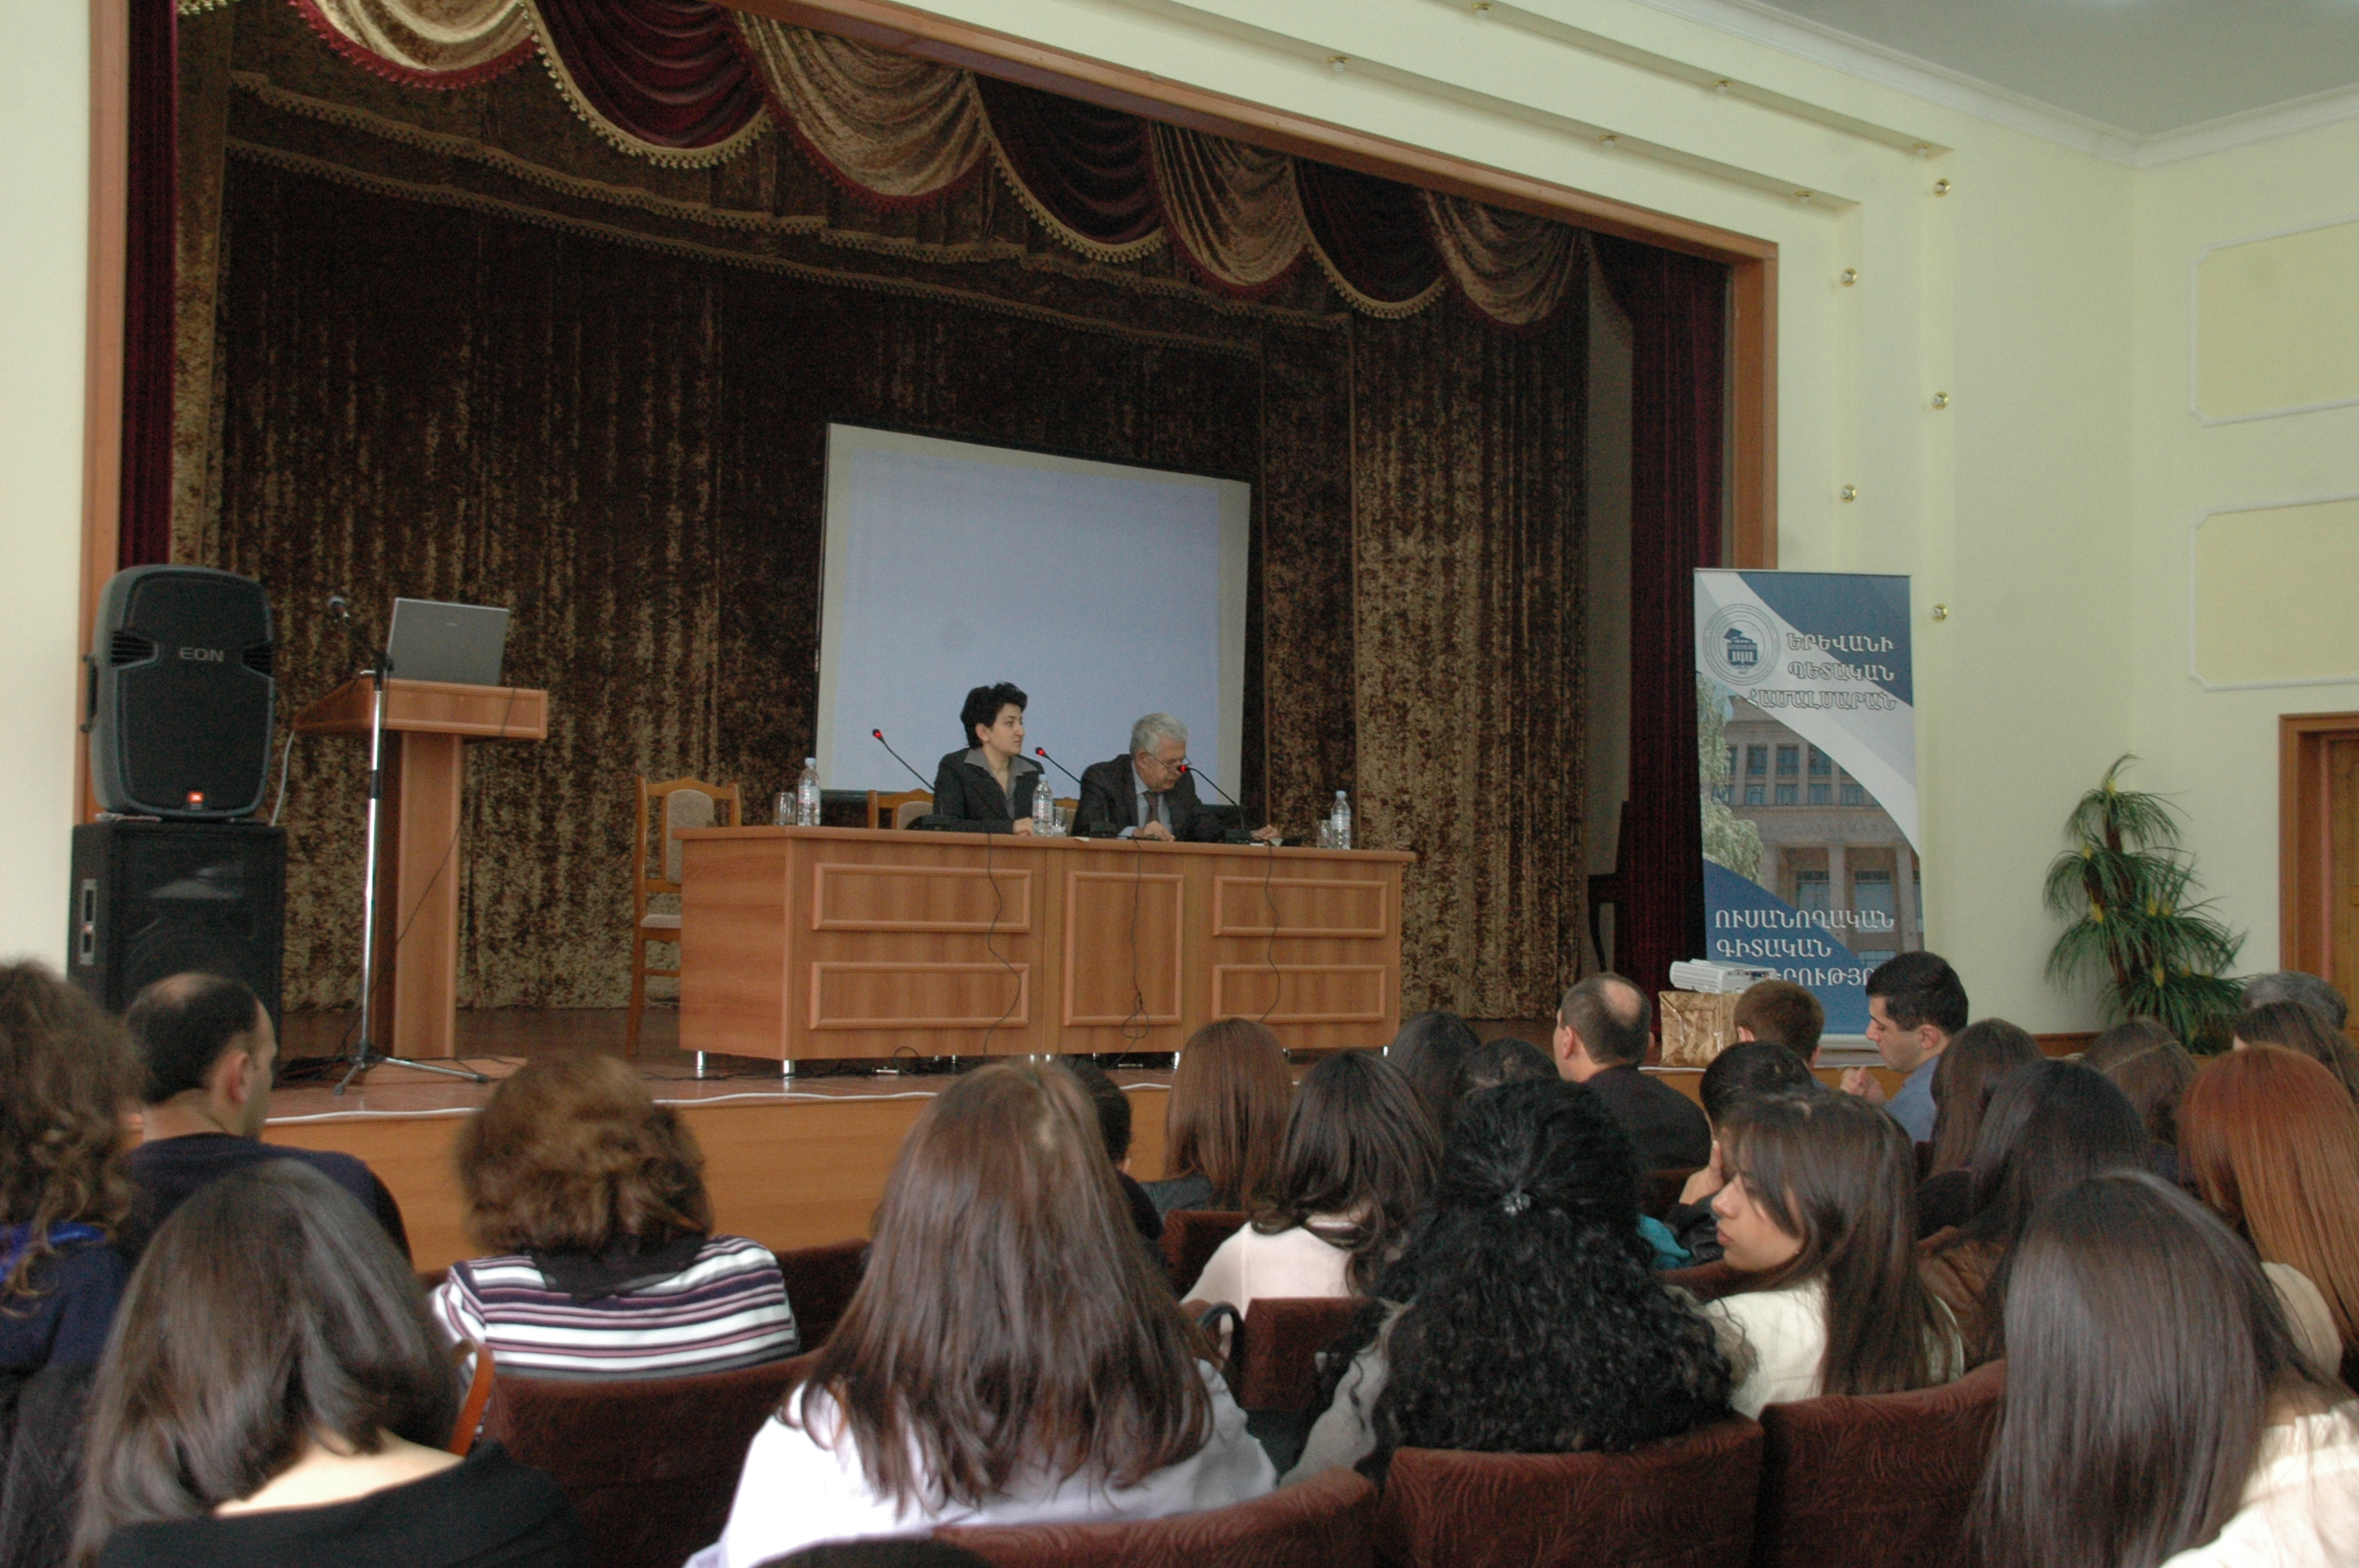 CONFERENCE ON ARMENIAN STUDIES IN ARTSAKH